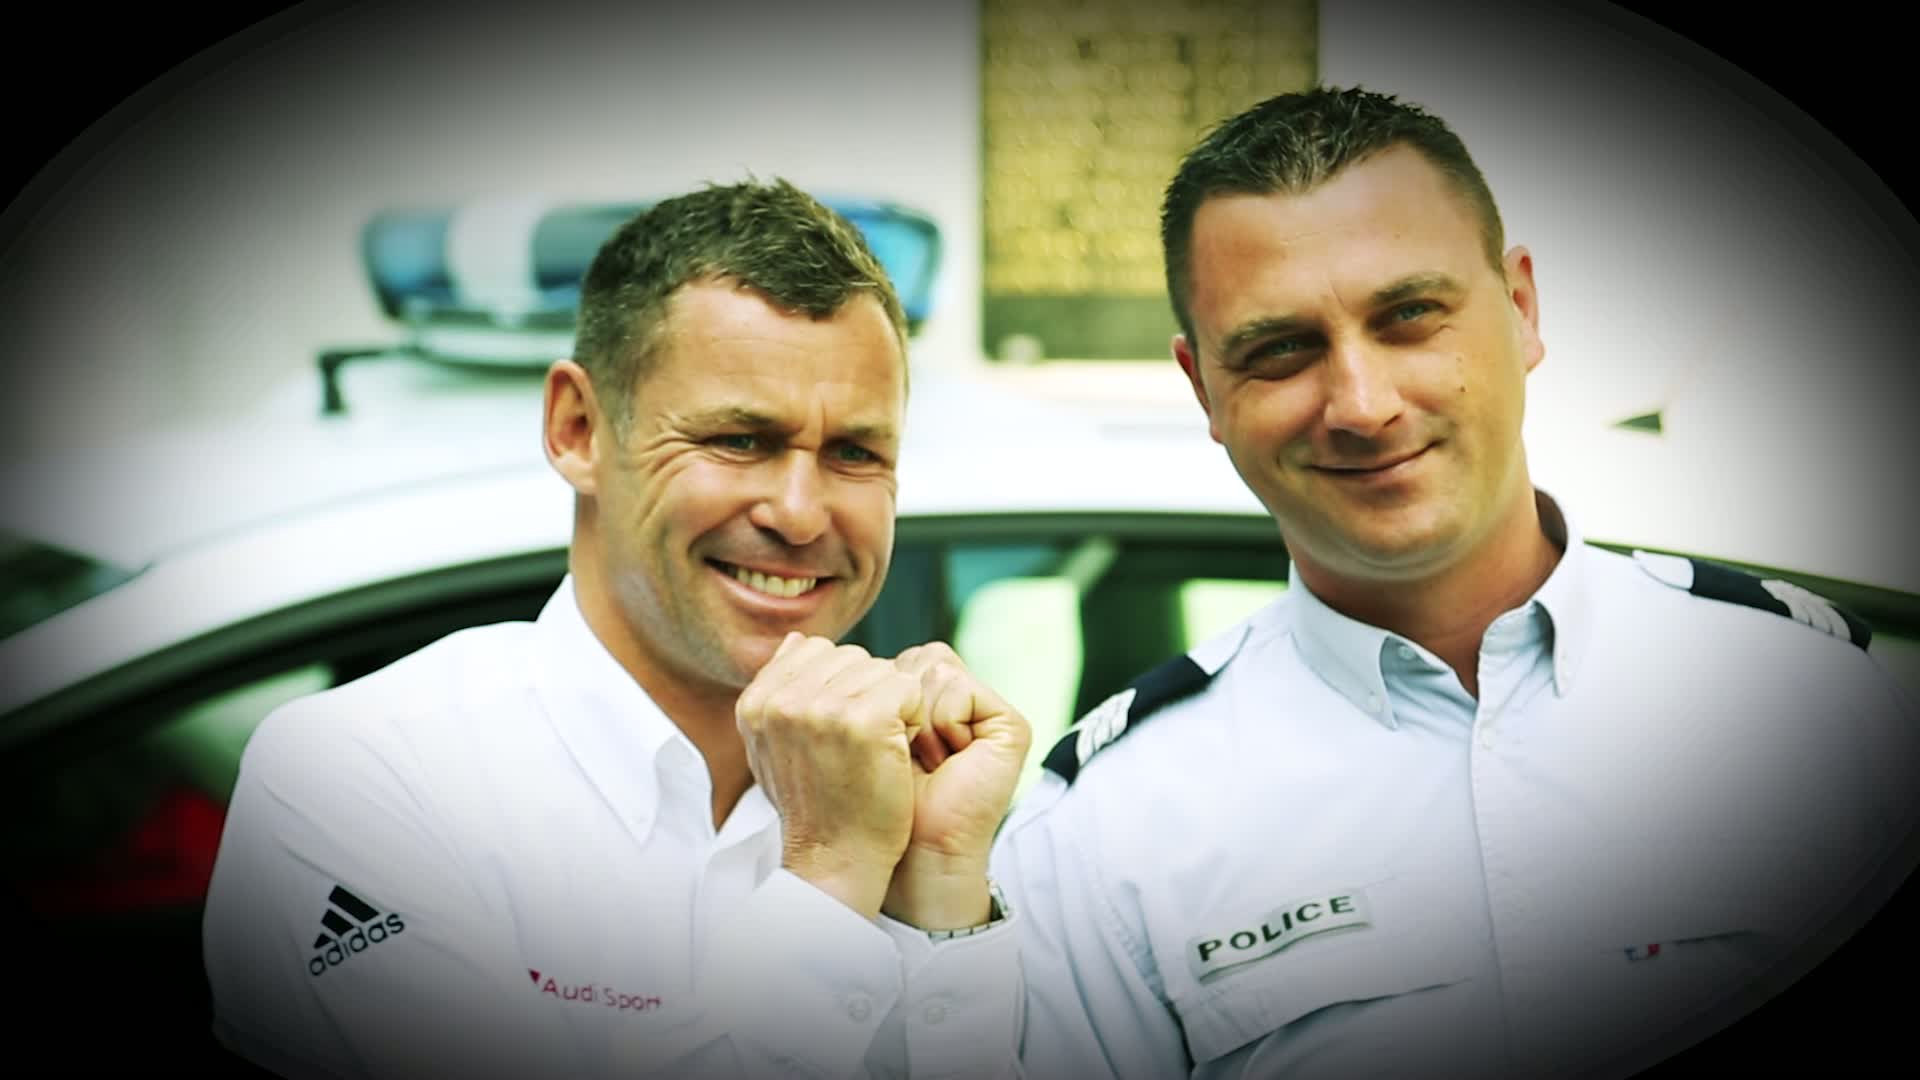 60 Seconds of Audi Sport 36/2015 - Tom Kristensen visits Police in Le Mans